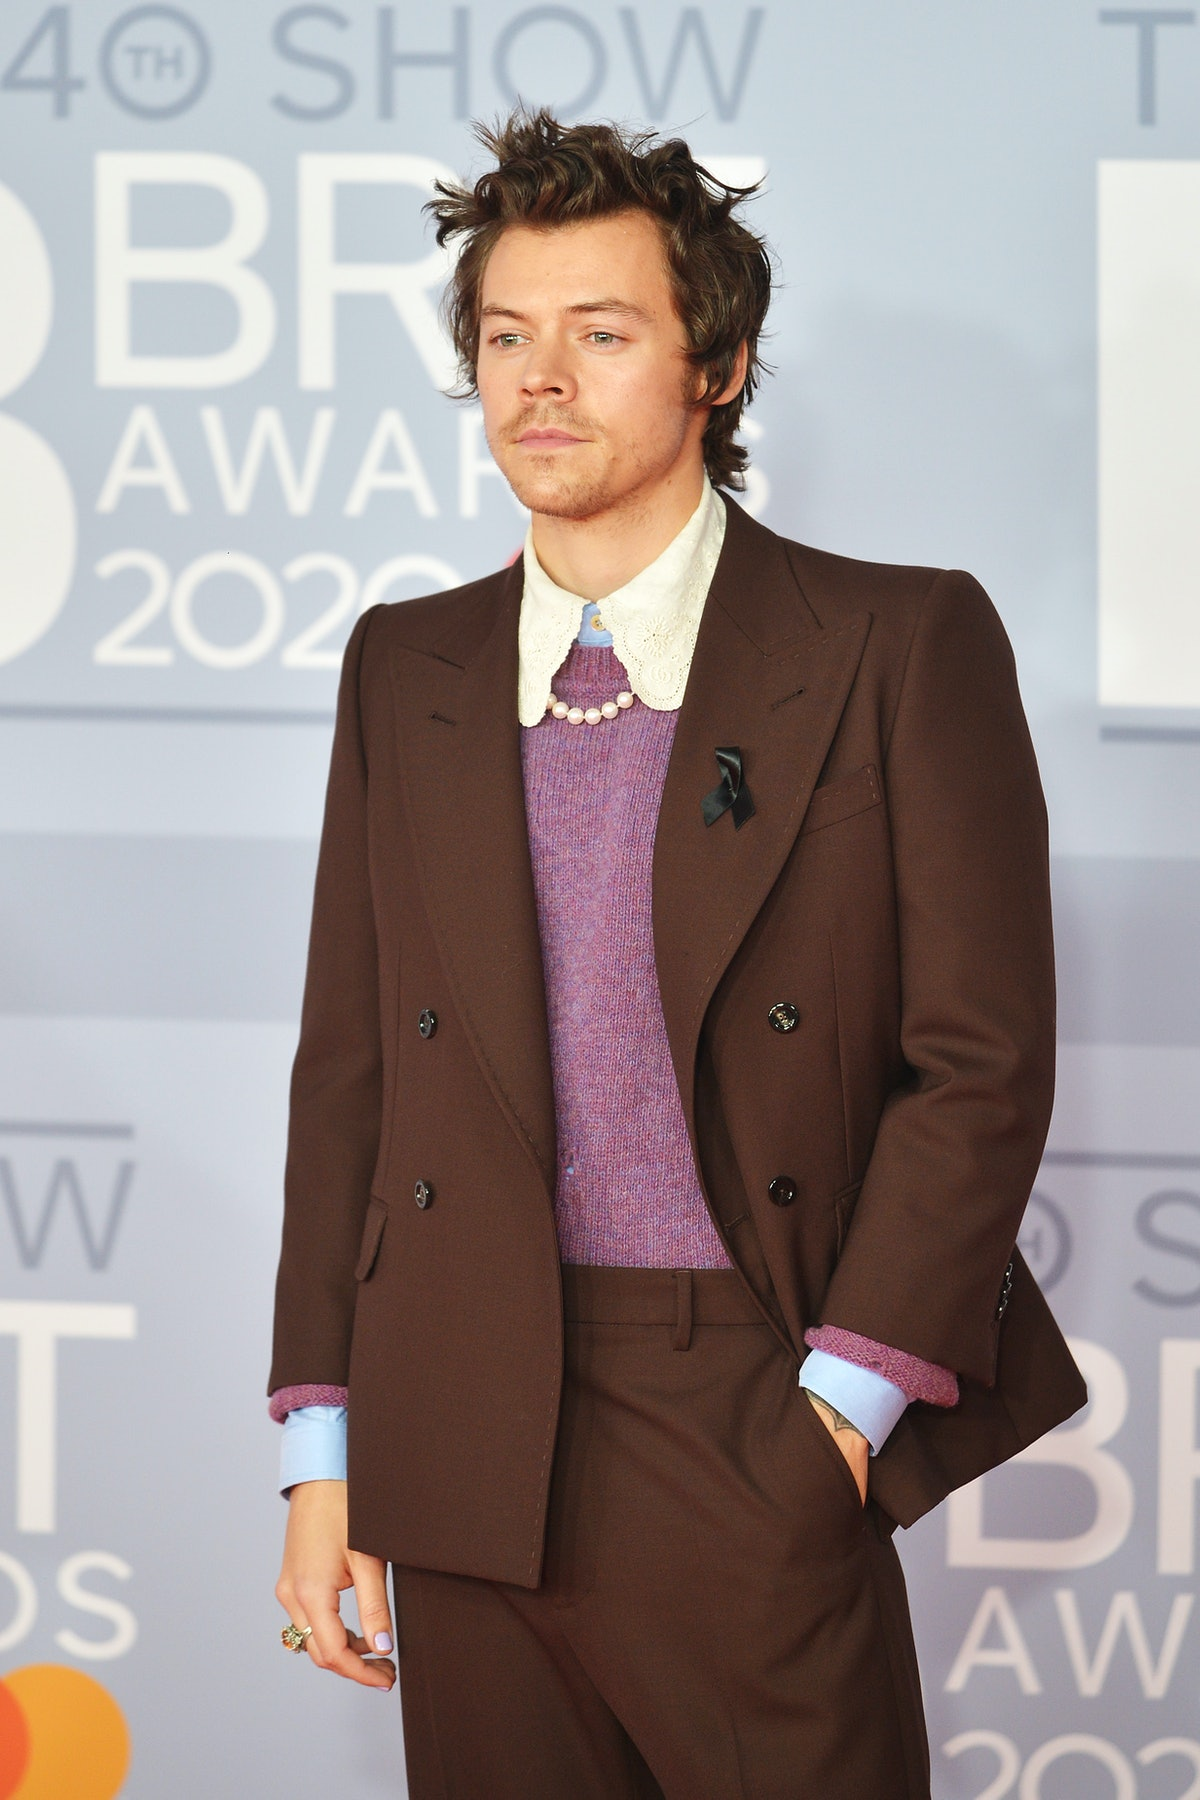 Harry Styles, who fans are convinced may be launching a perfume line, posing on the red carpet at the 2020 Brit Awards.